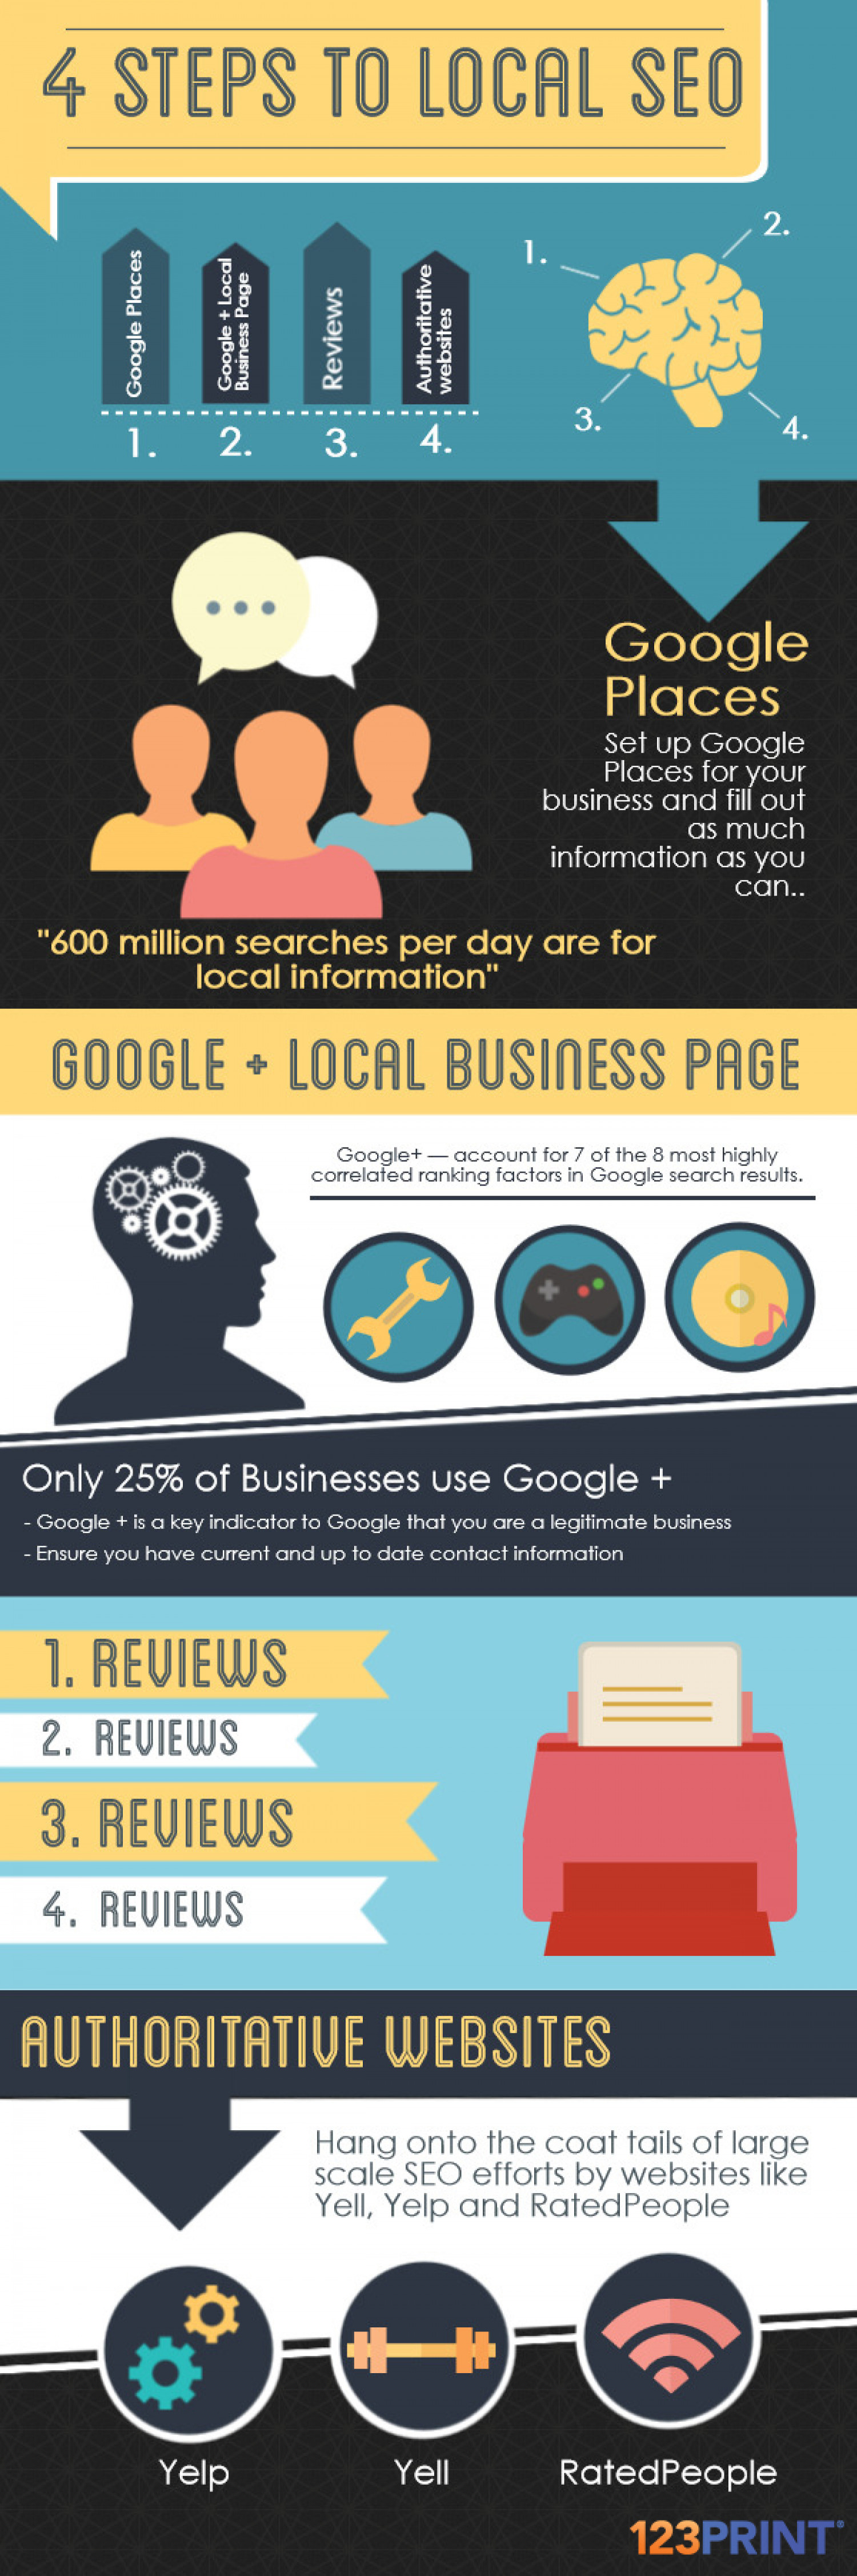 4 Steps to Local SEO Infographic